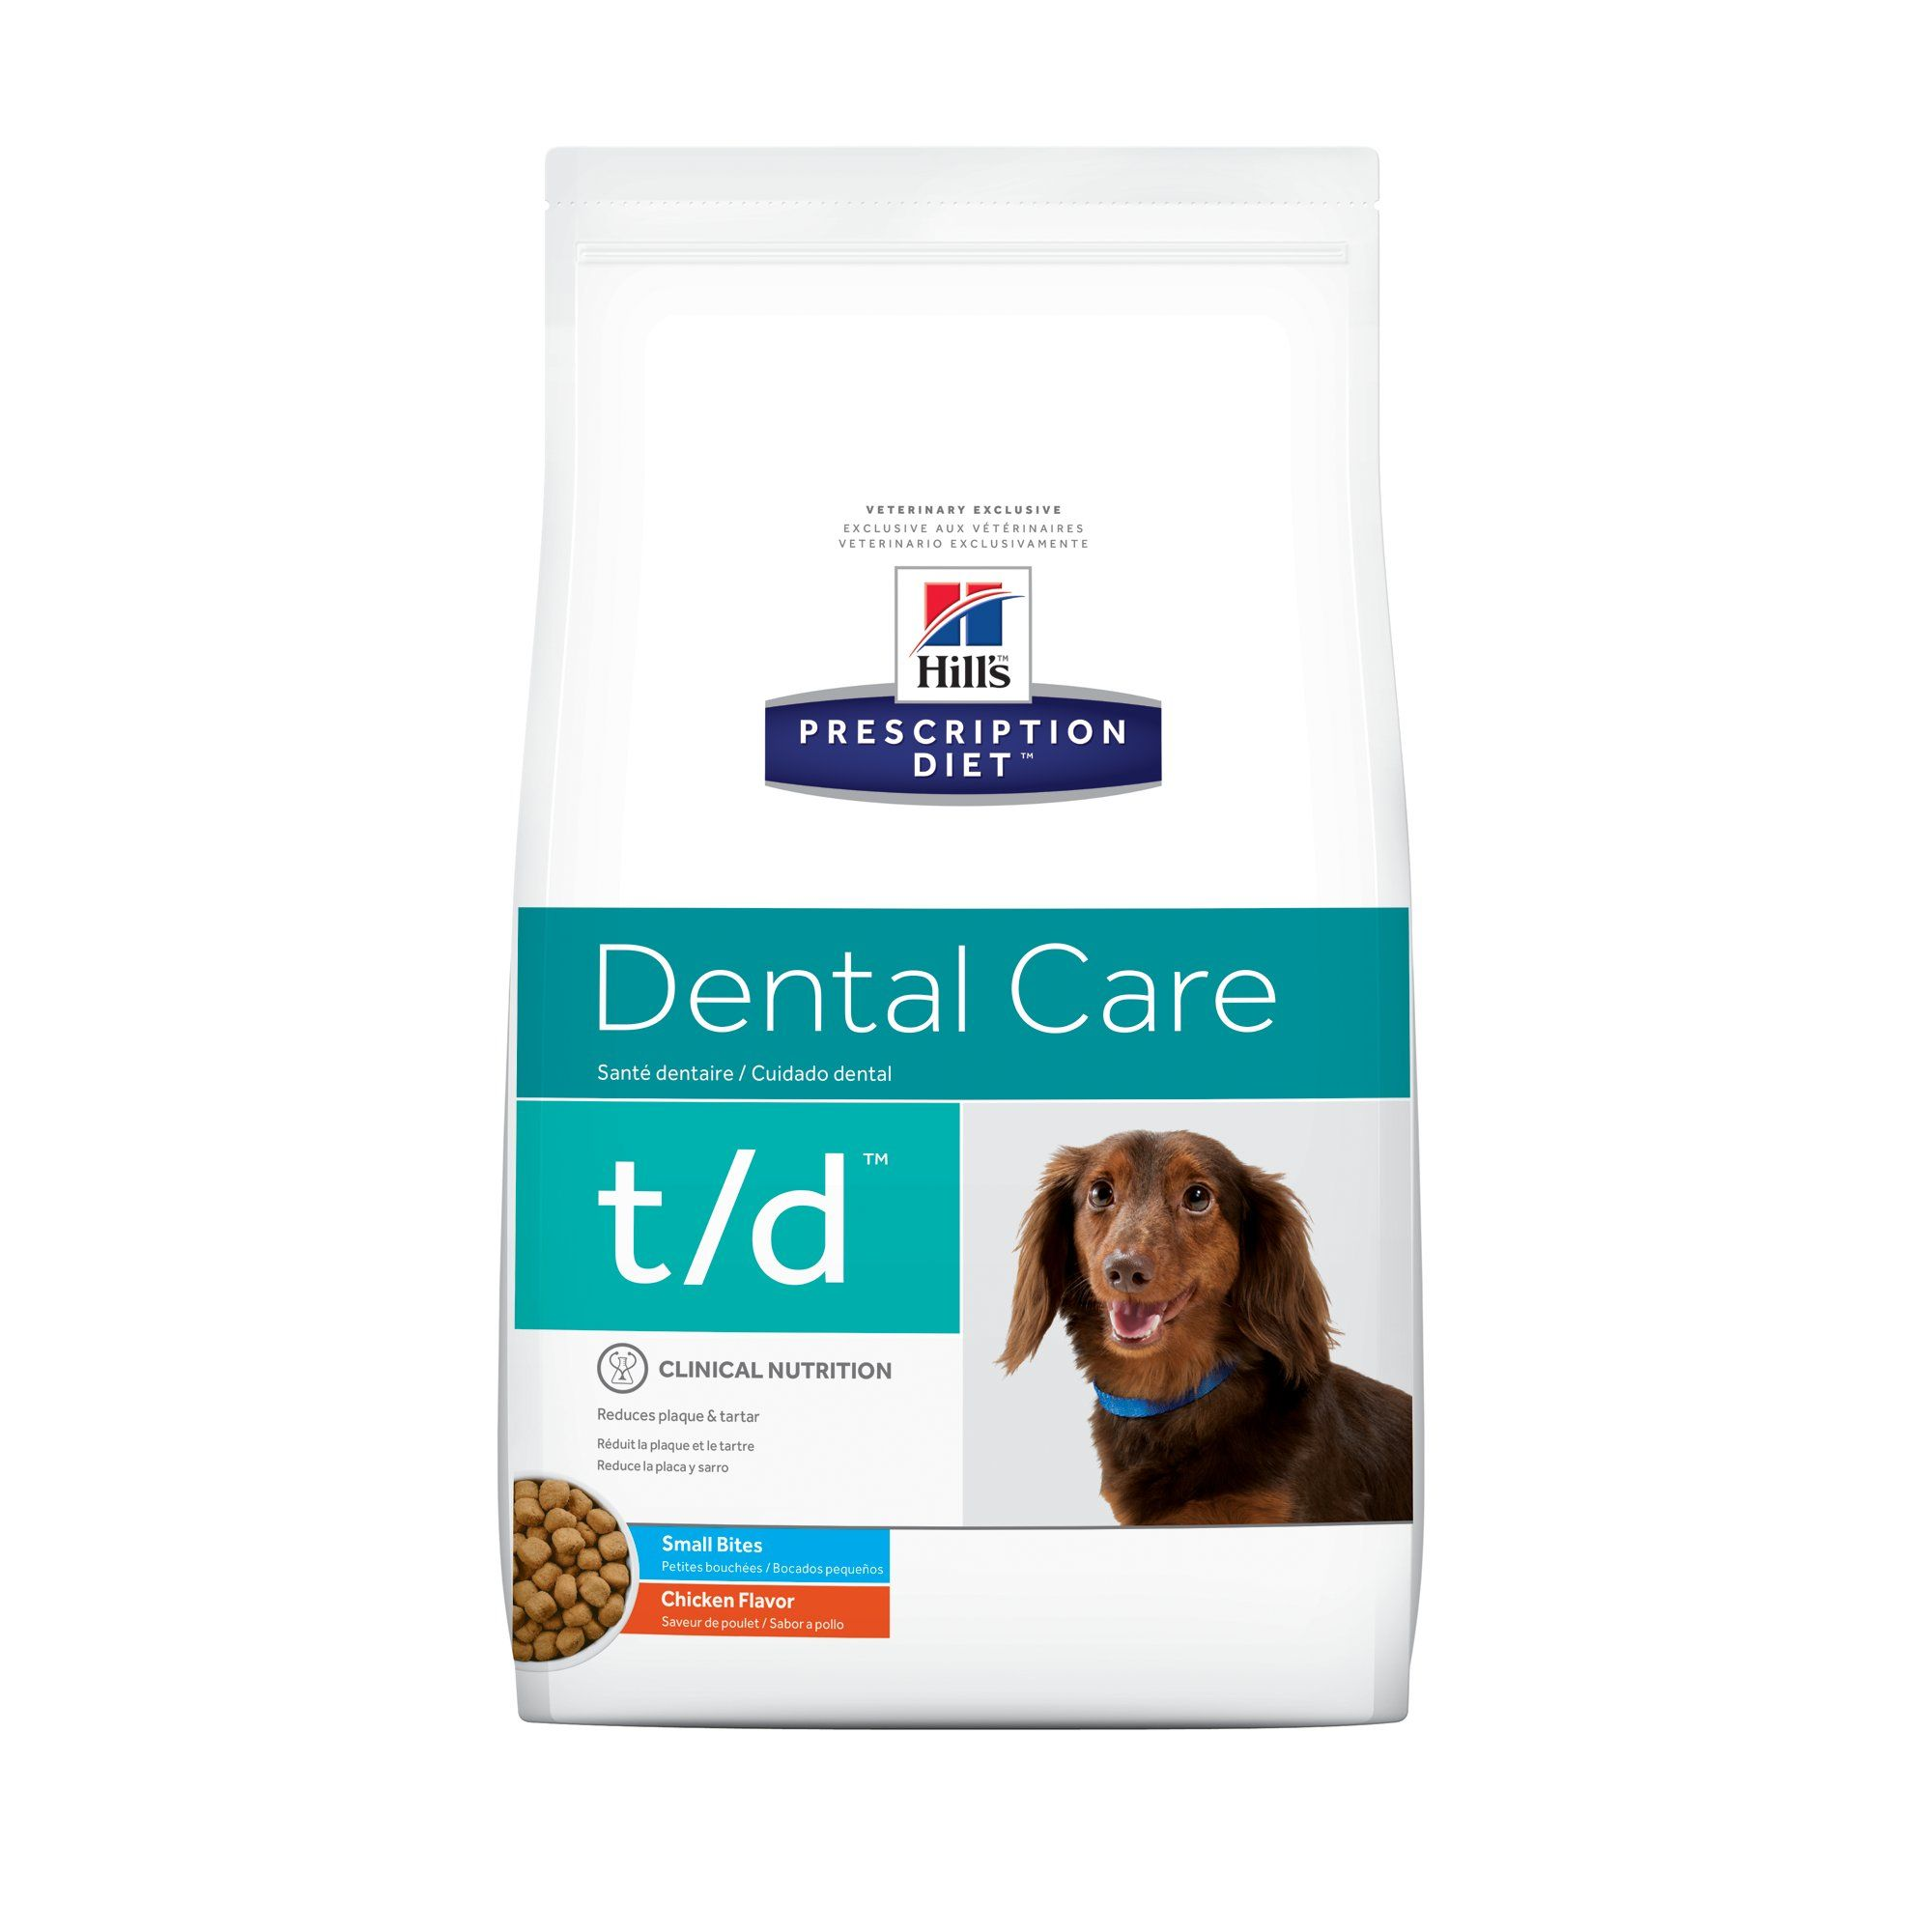 Hill S Prescription Diet T D Dental Care Small Bites Chicken Flavor Dry Dog Food 5 Lbs Bag Dry Dog Food Animal Nutrition Dental Care